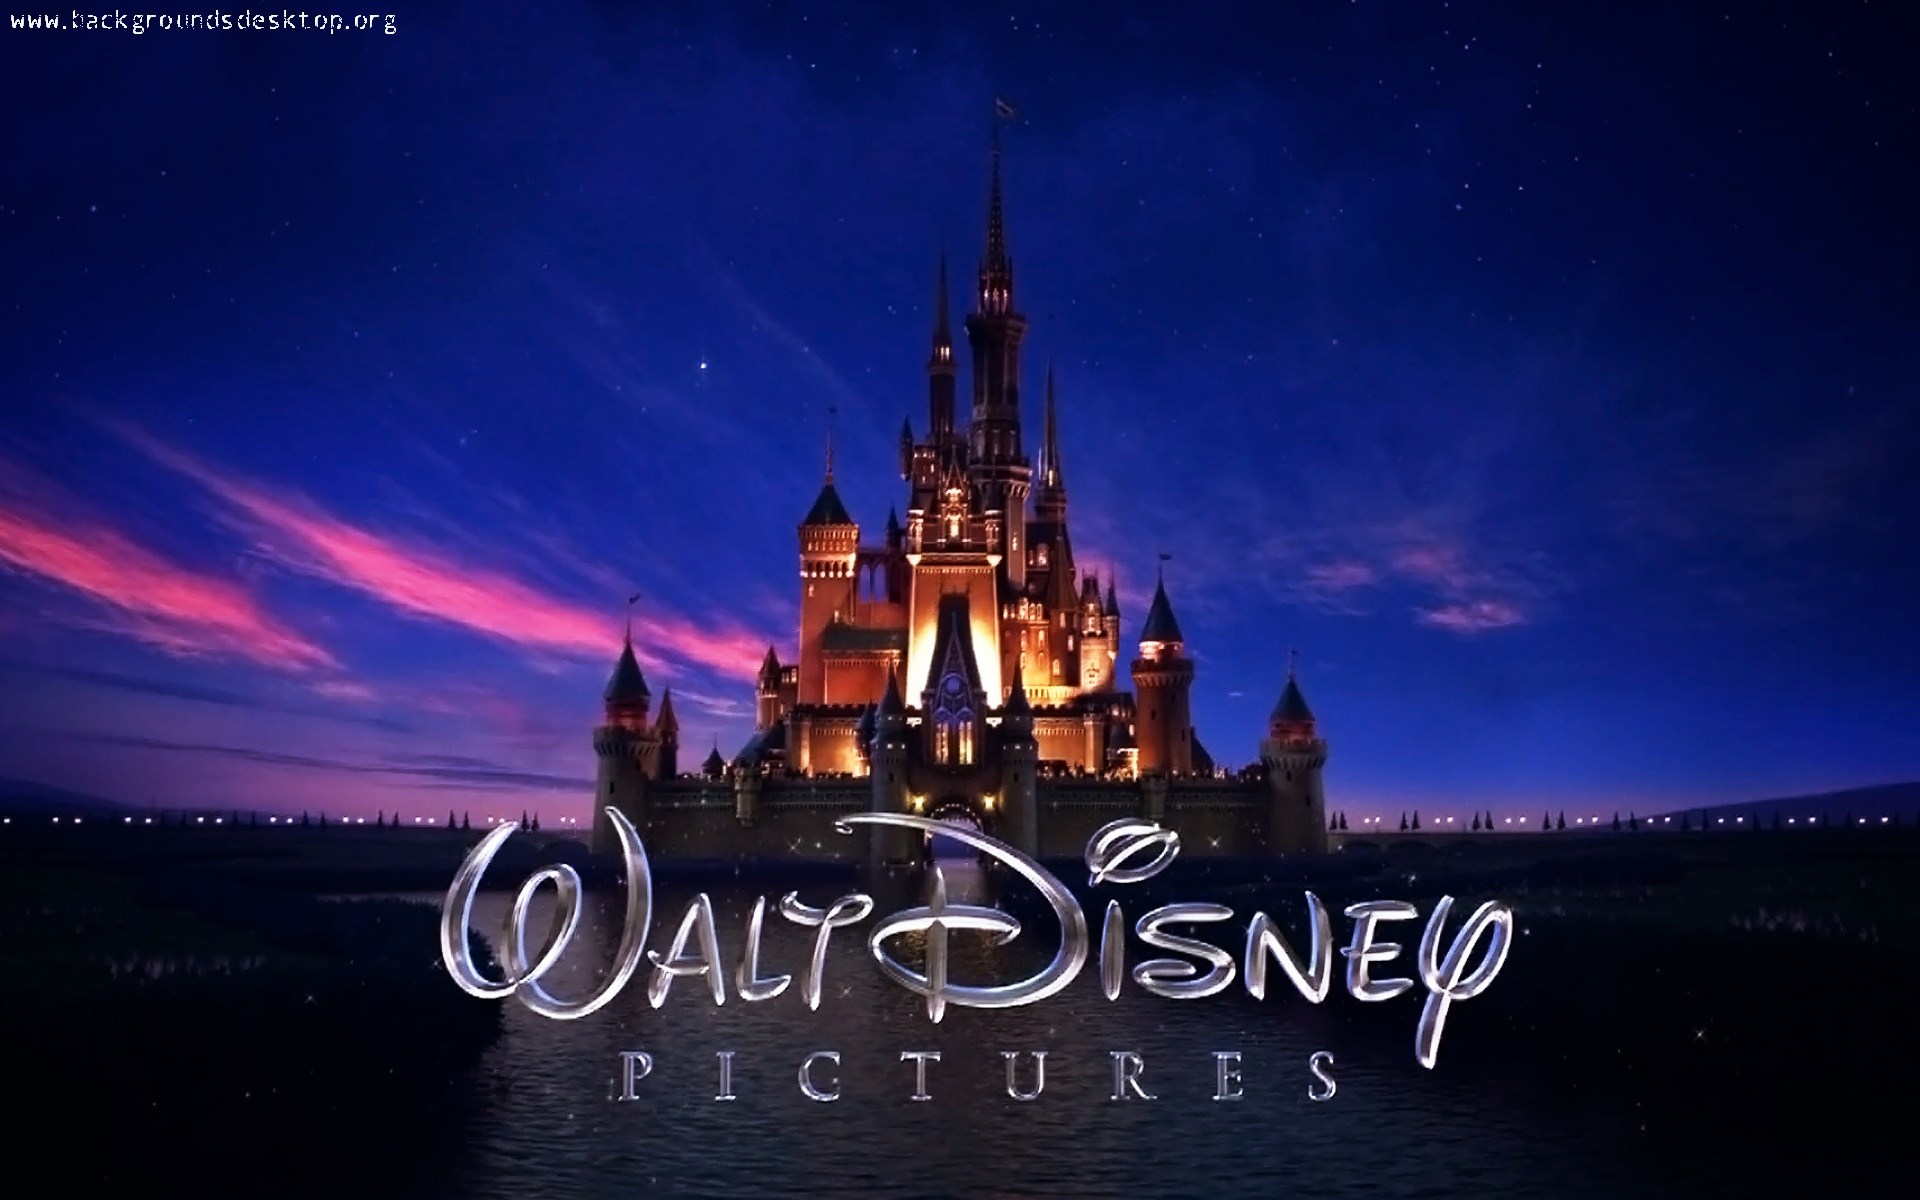 Disney Castle Wallpaper 1920x1200